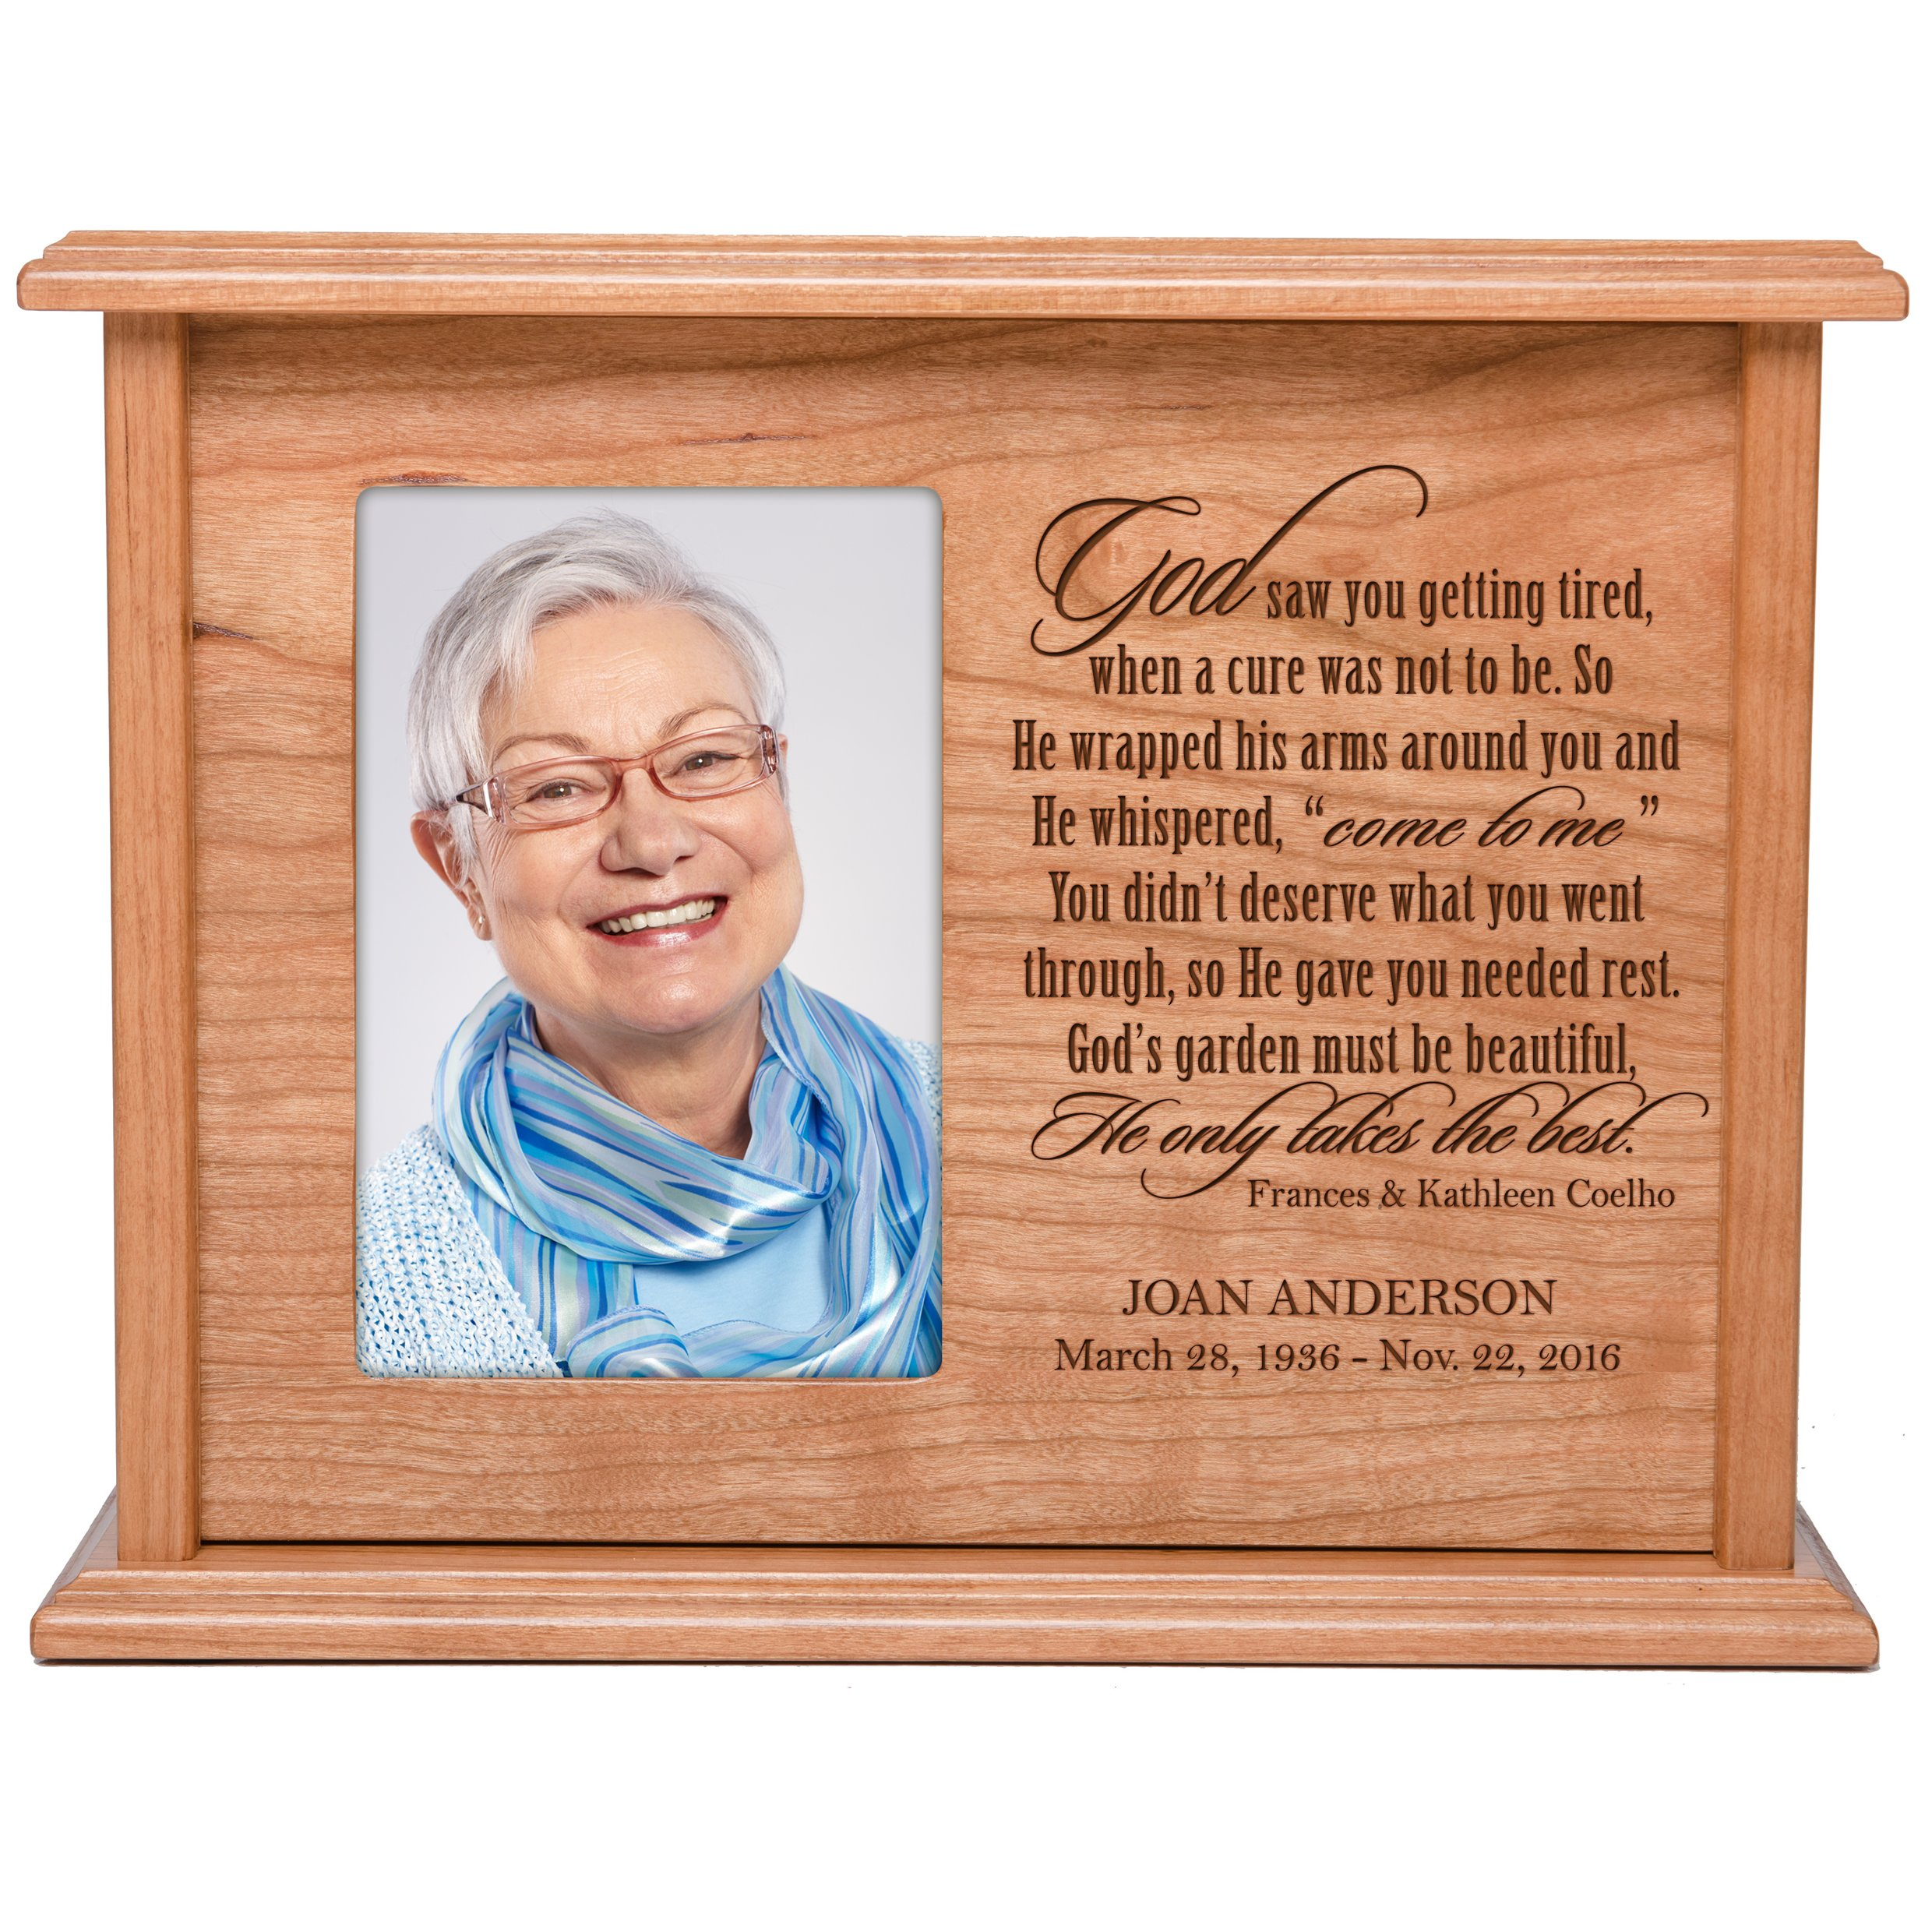 Cremation Urns for Human Ashes Memorial Keepsake box for cremains, personalized Urn for adults and children ashes God saw you getting tired SMALL portion of ashes holds 4x6 photo holds